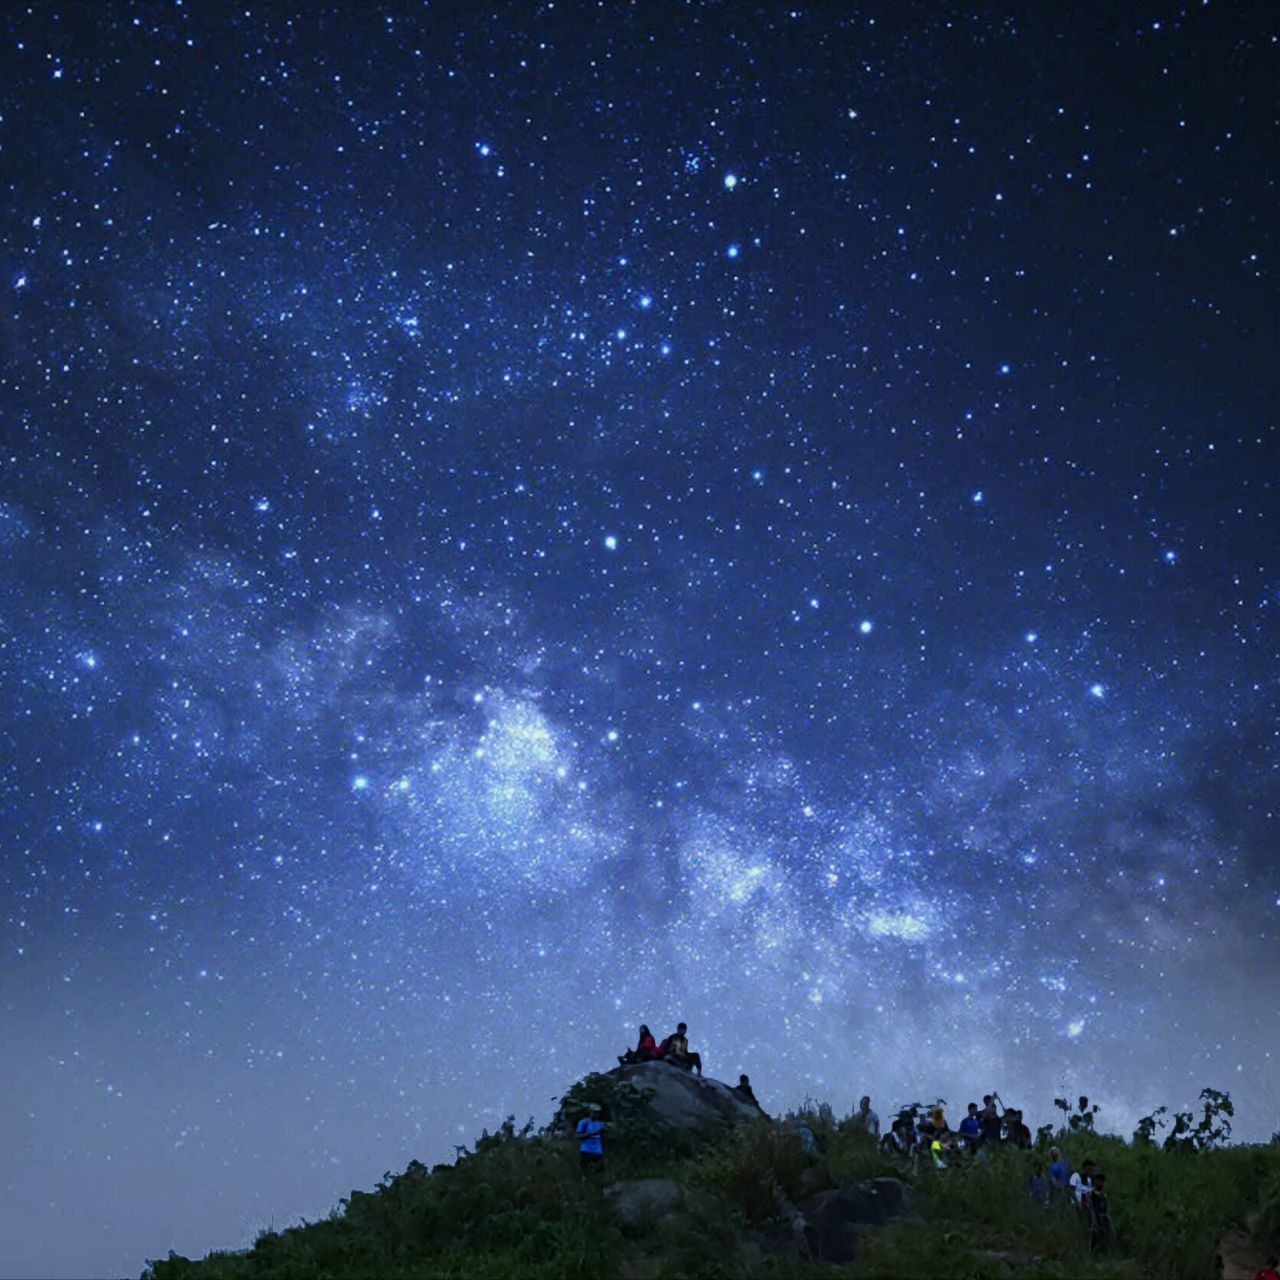 Low Angle View Of People On Mountain Against Star Field